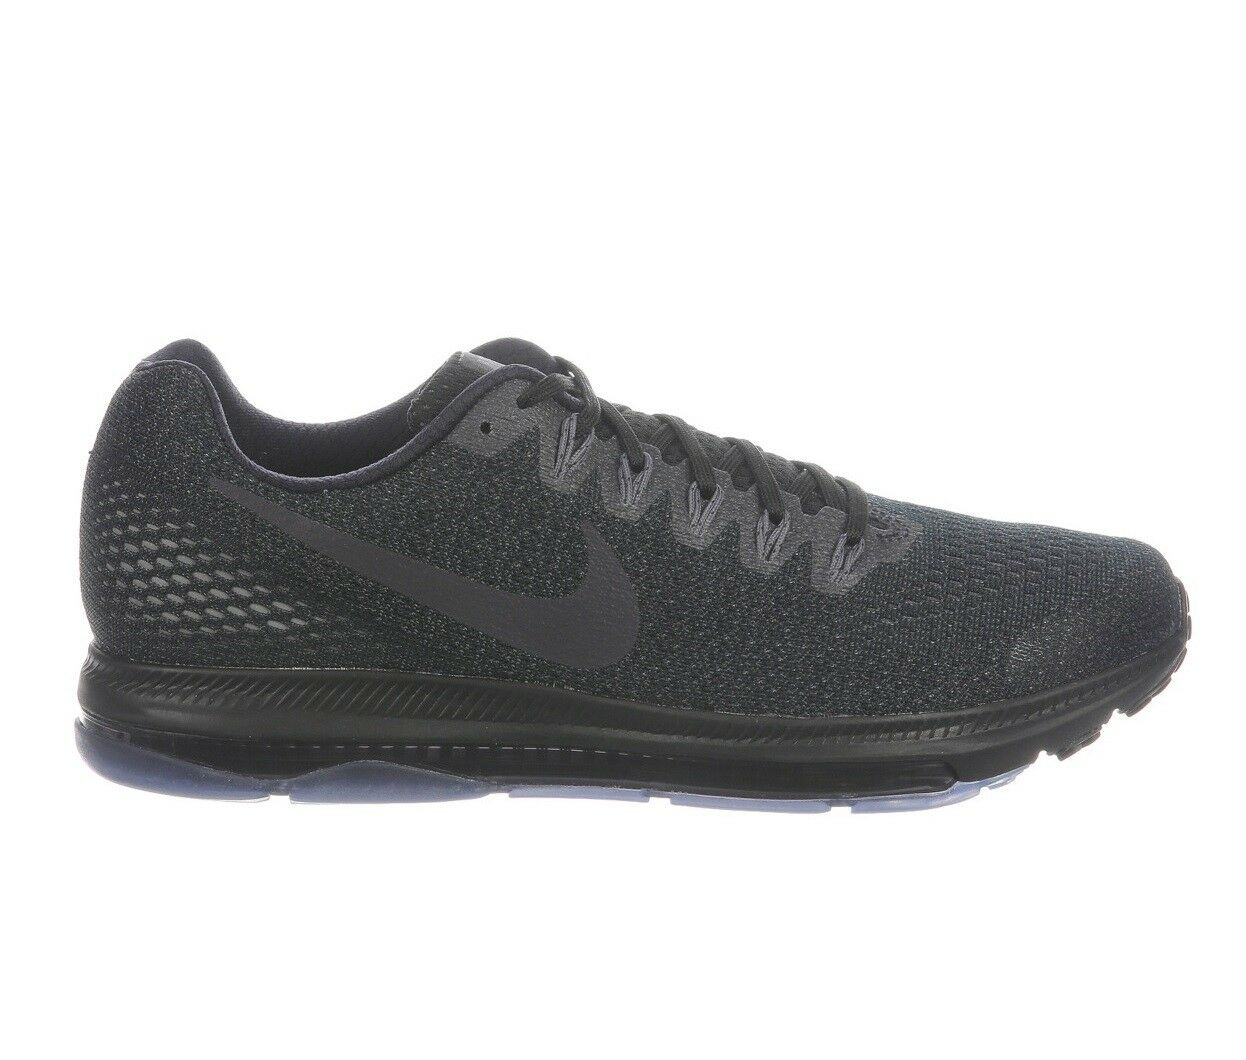 Nike Zoom All Out Low Mens  878670 -011 nero Aura grigio Running scarpe Dimensione 7.5  outlet online